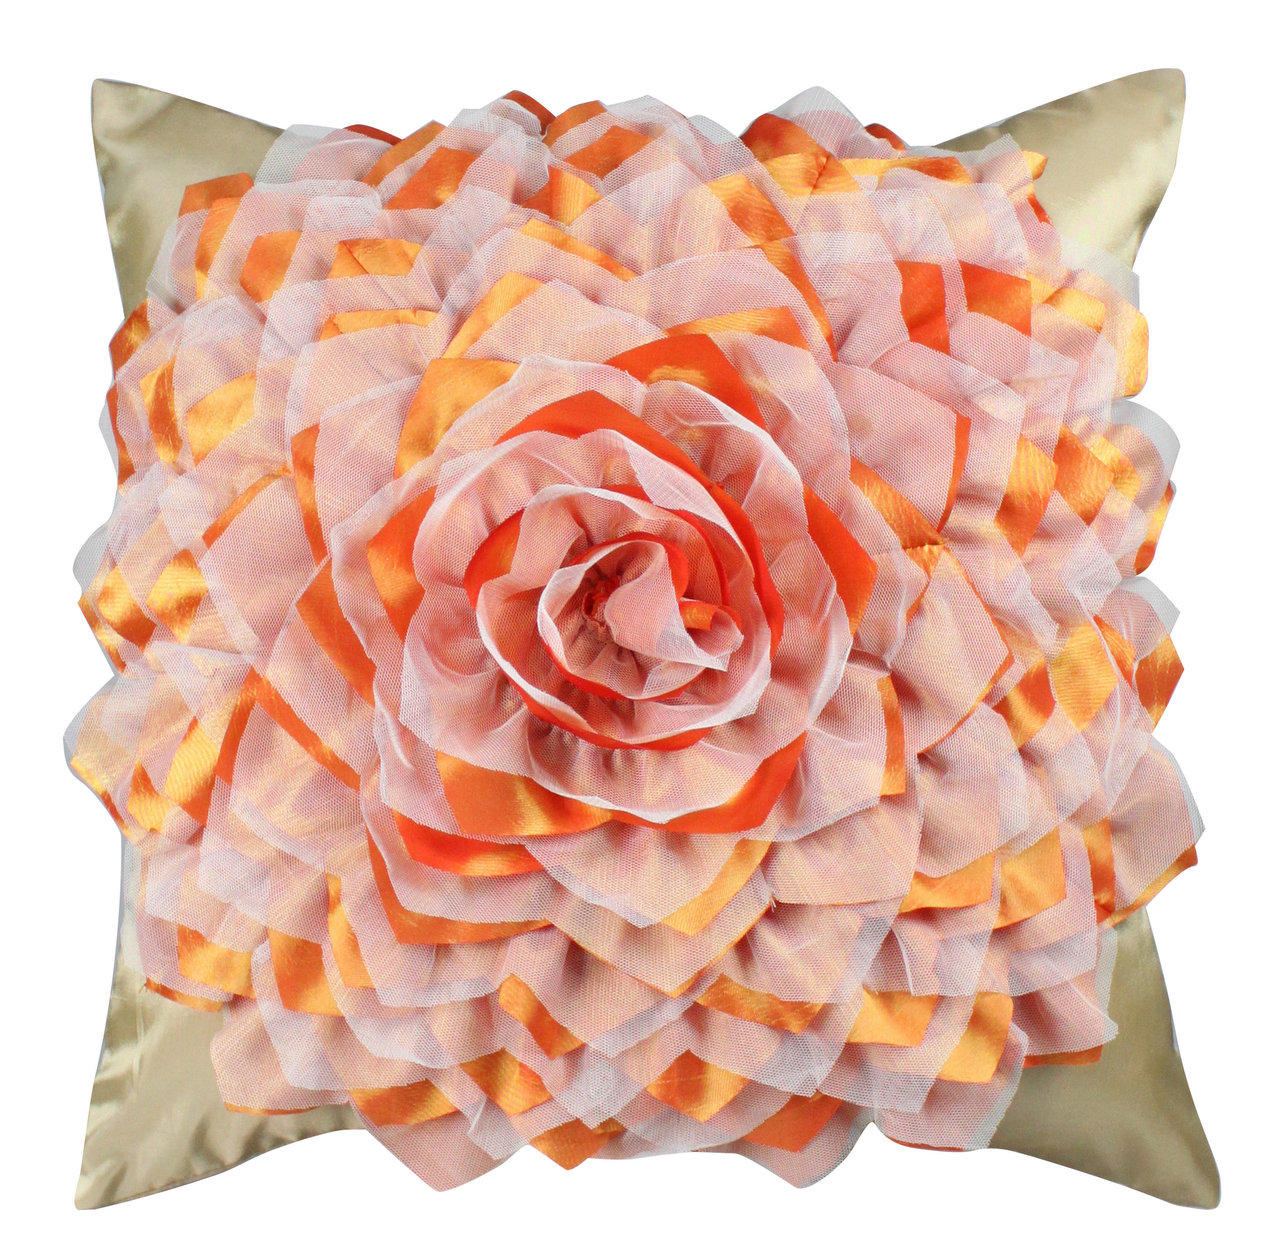 Gold And Terracotta Flower Cushion Forever Furnishings